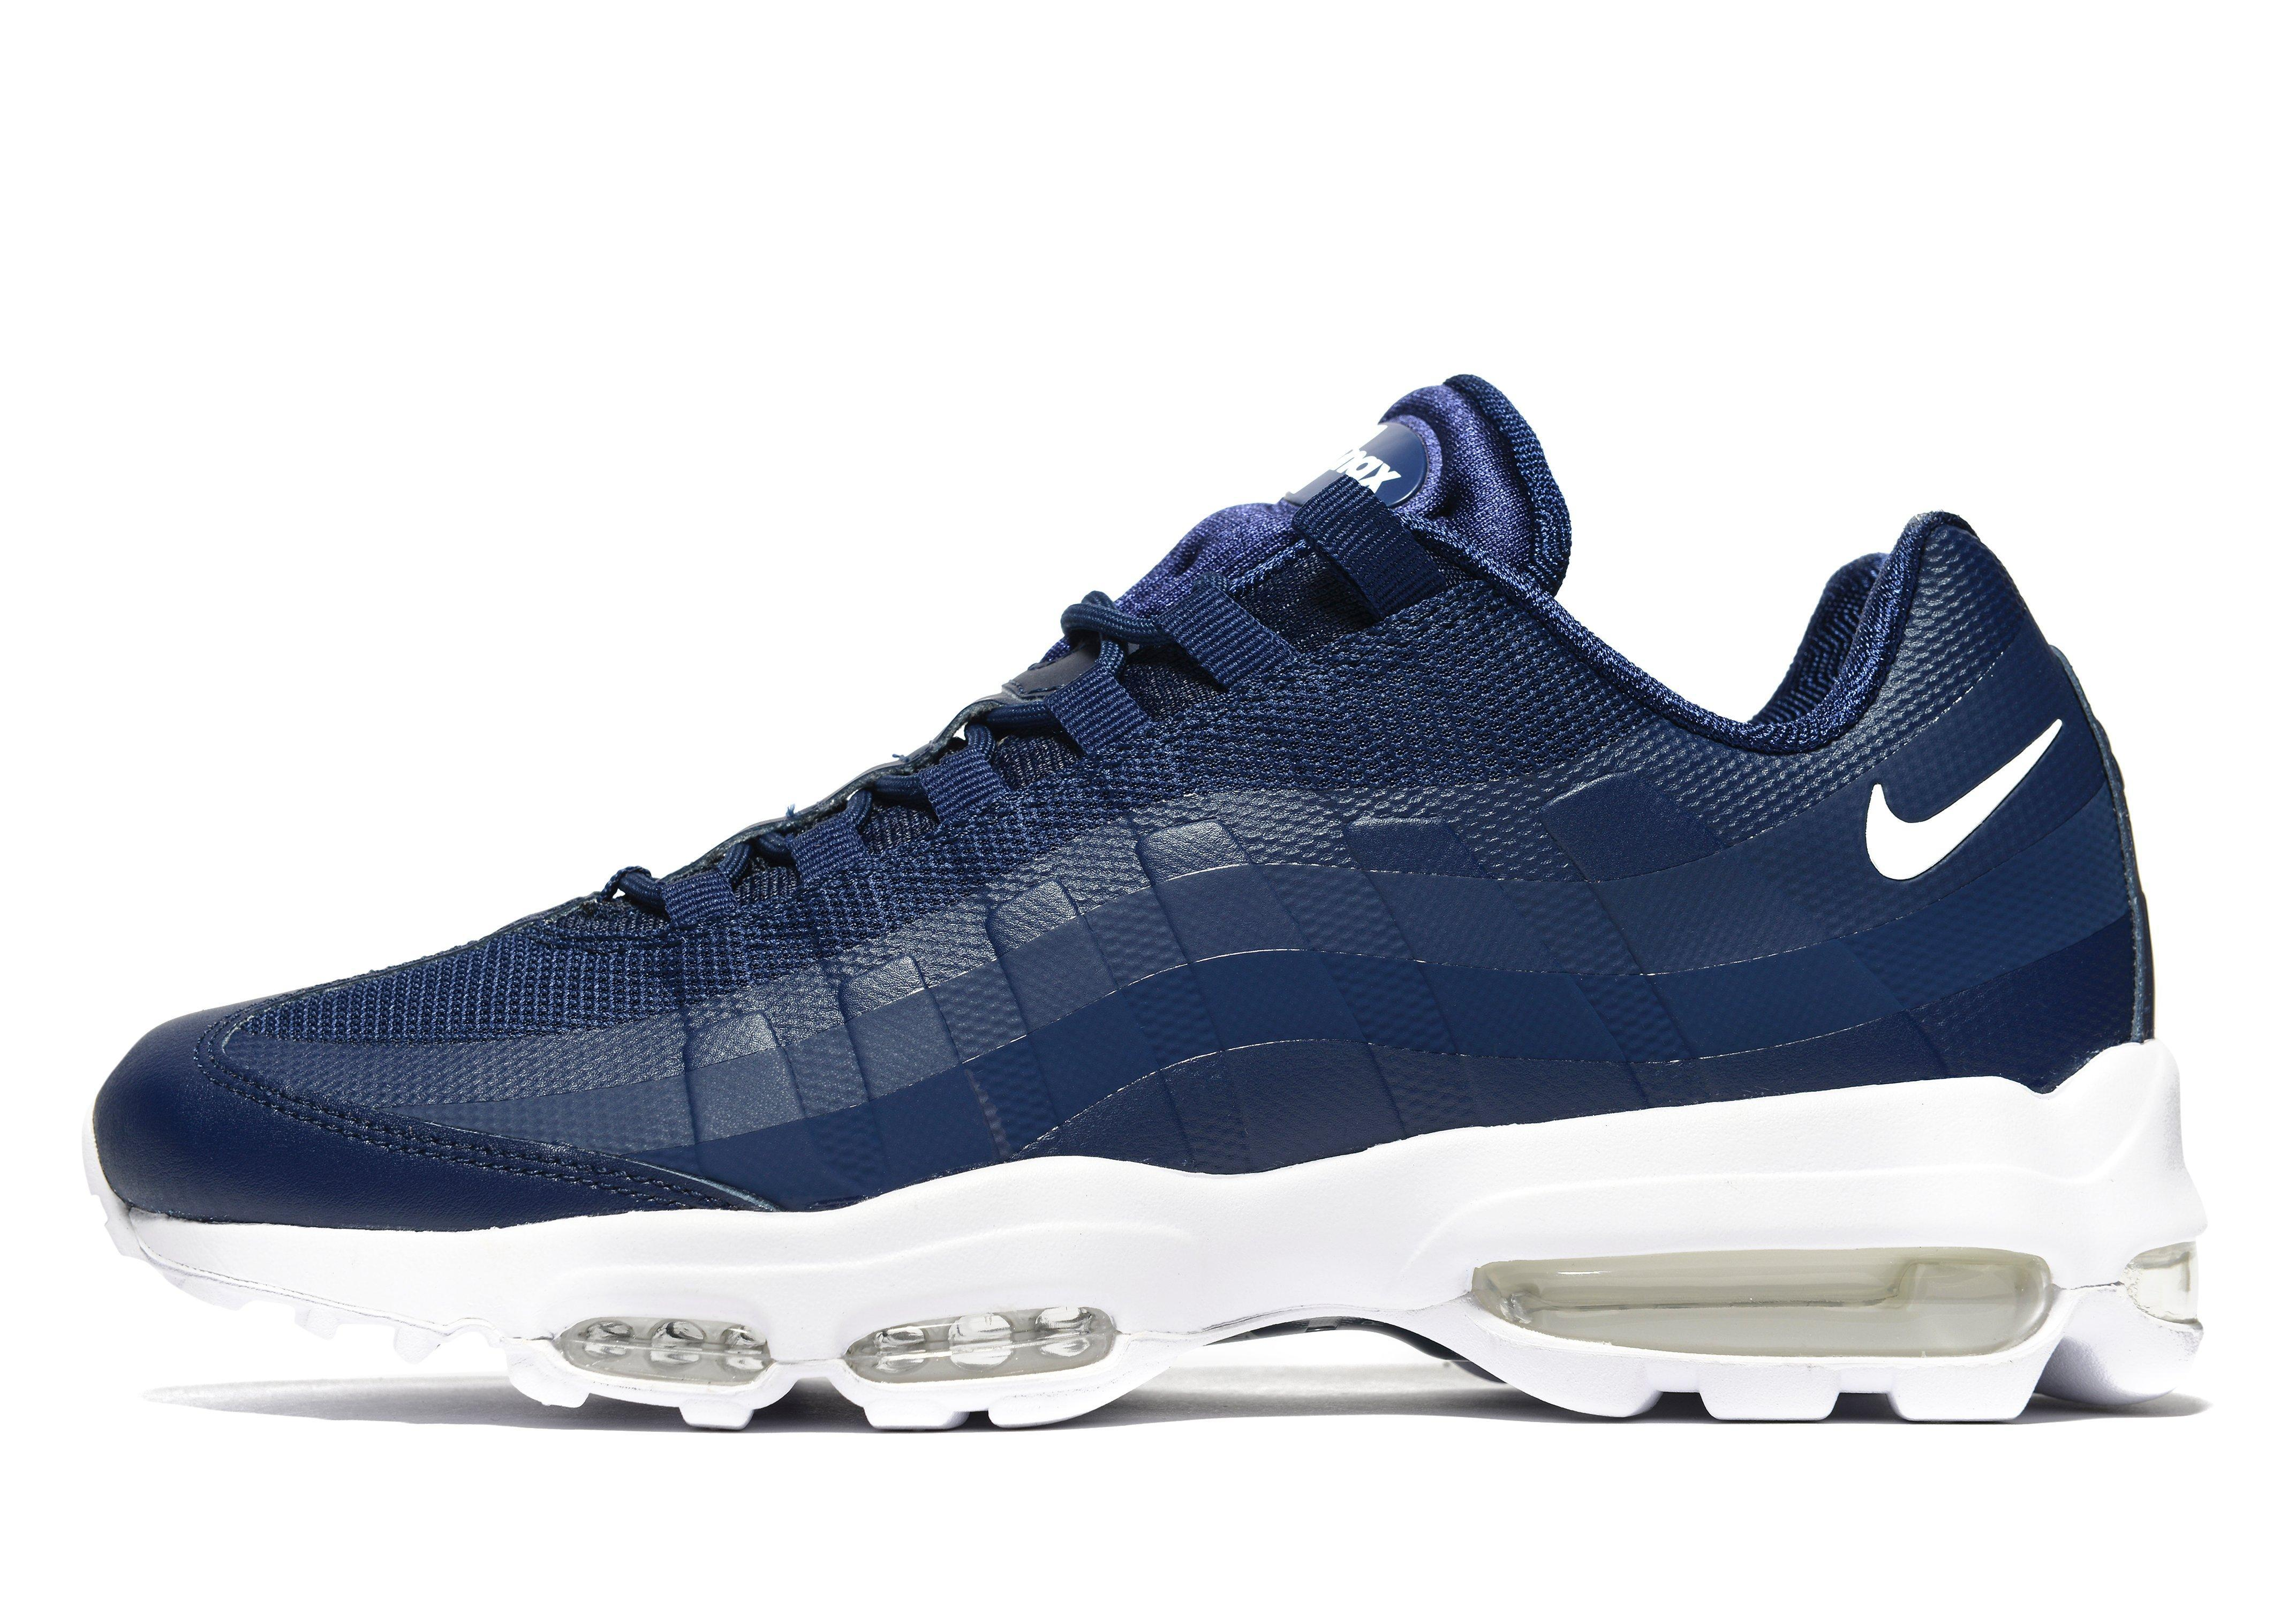 e3bd6d033ff Lyst - Nike Air Max 95 Ultra Essential in Blue for Men nike air max 95  ultra essential blue and white